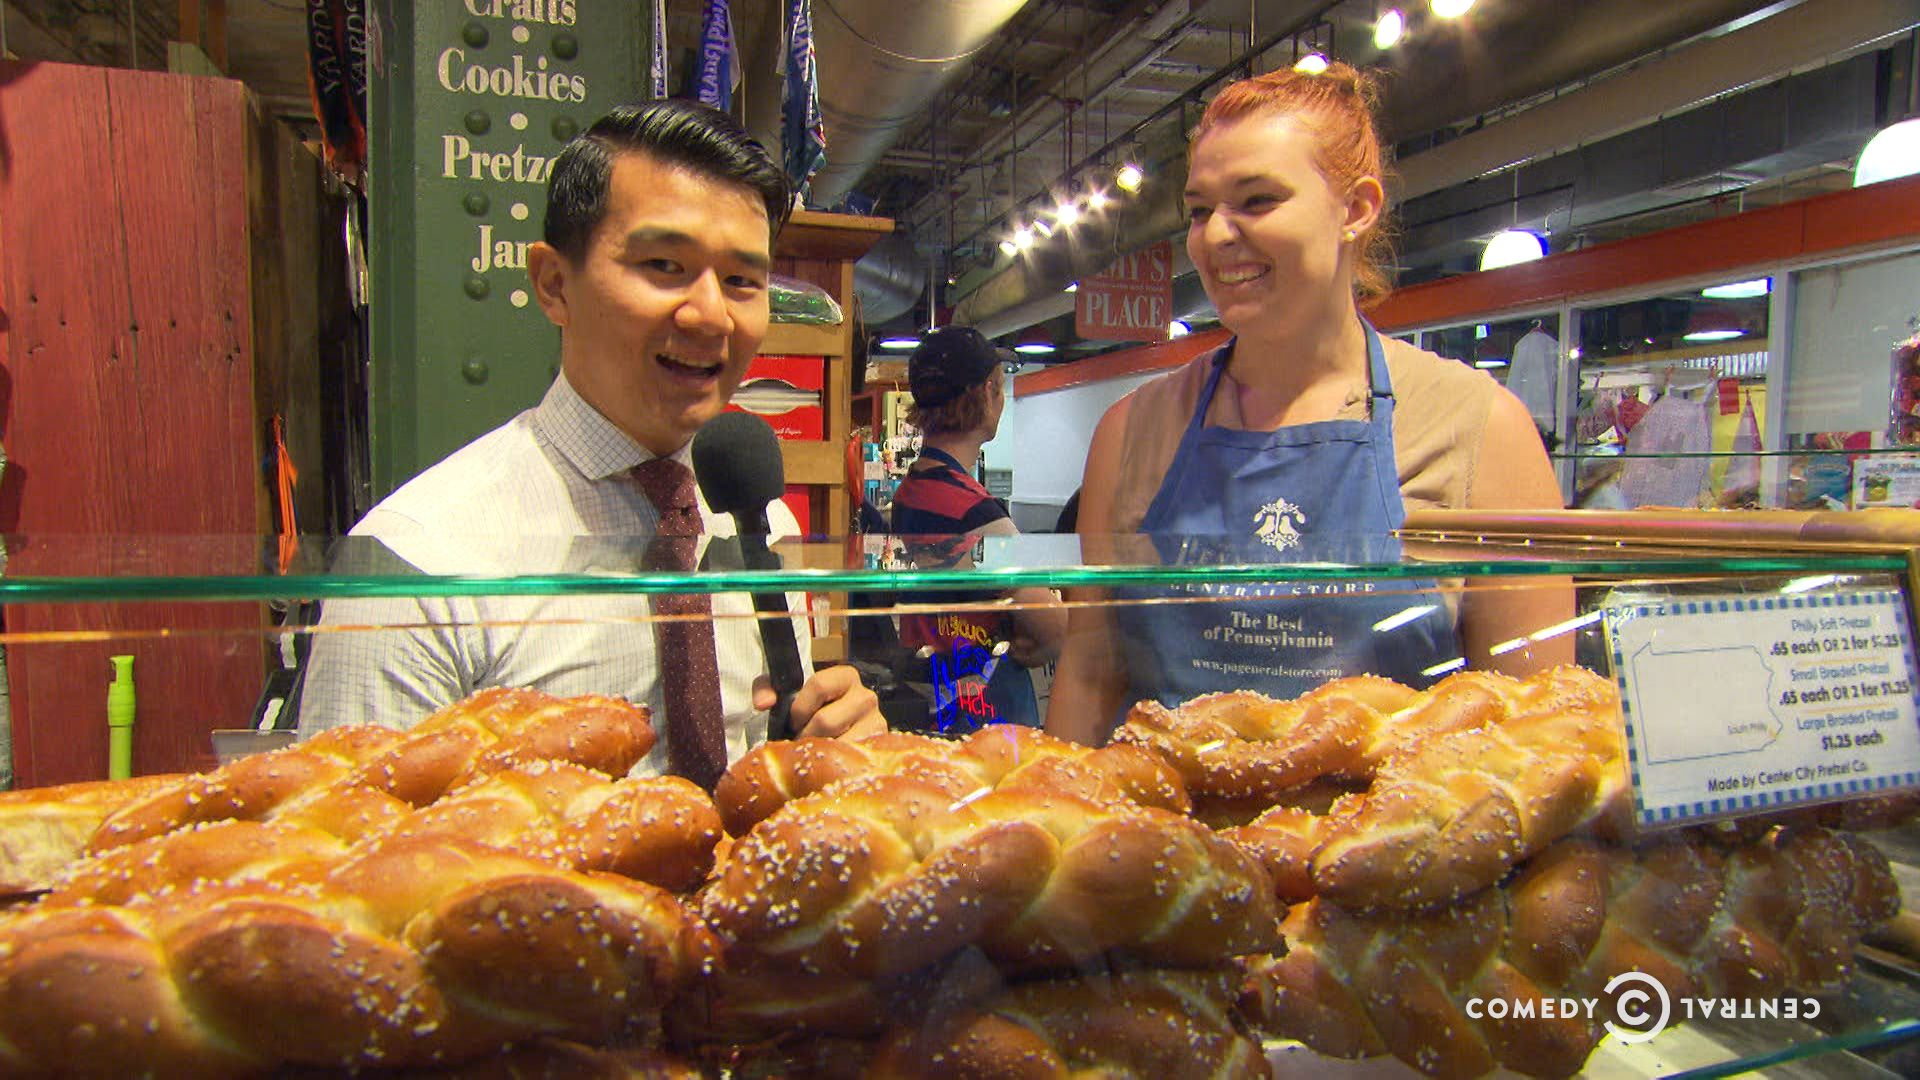 Exclusive - Ronny Chieng's Philly Food Tour - The Daily Show with Trevor Noah | Comedy Central